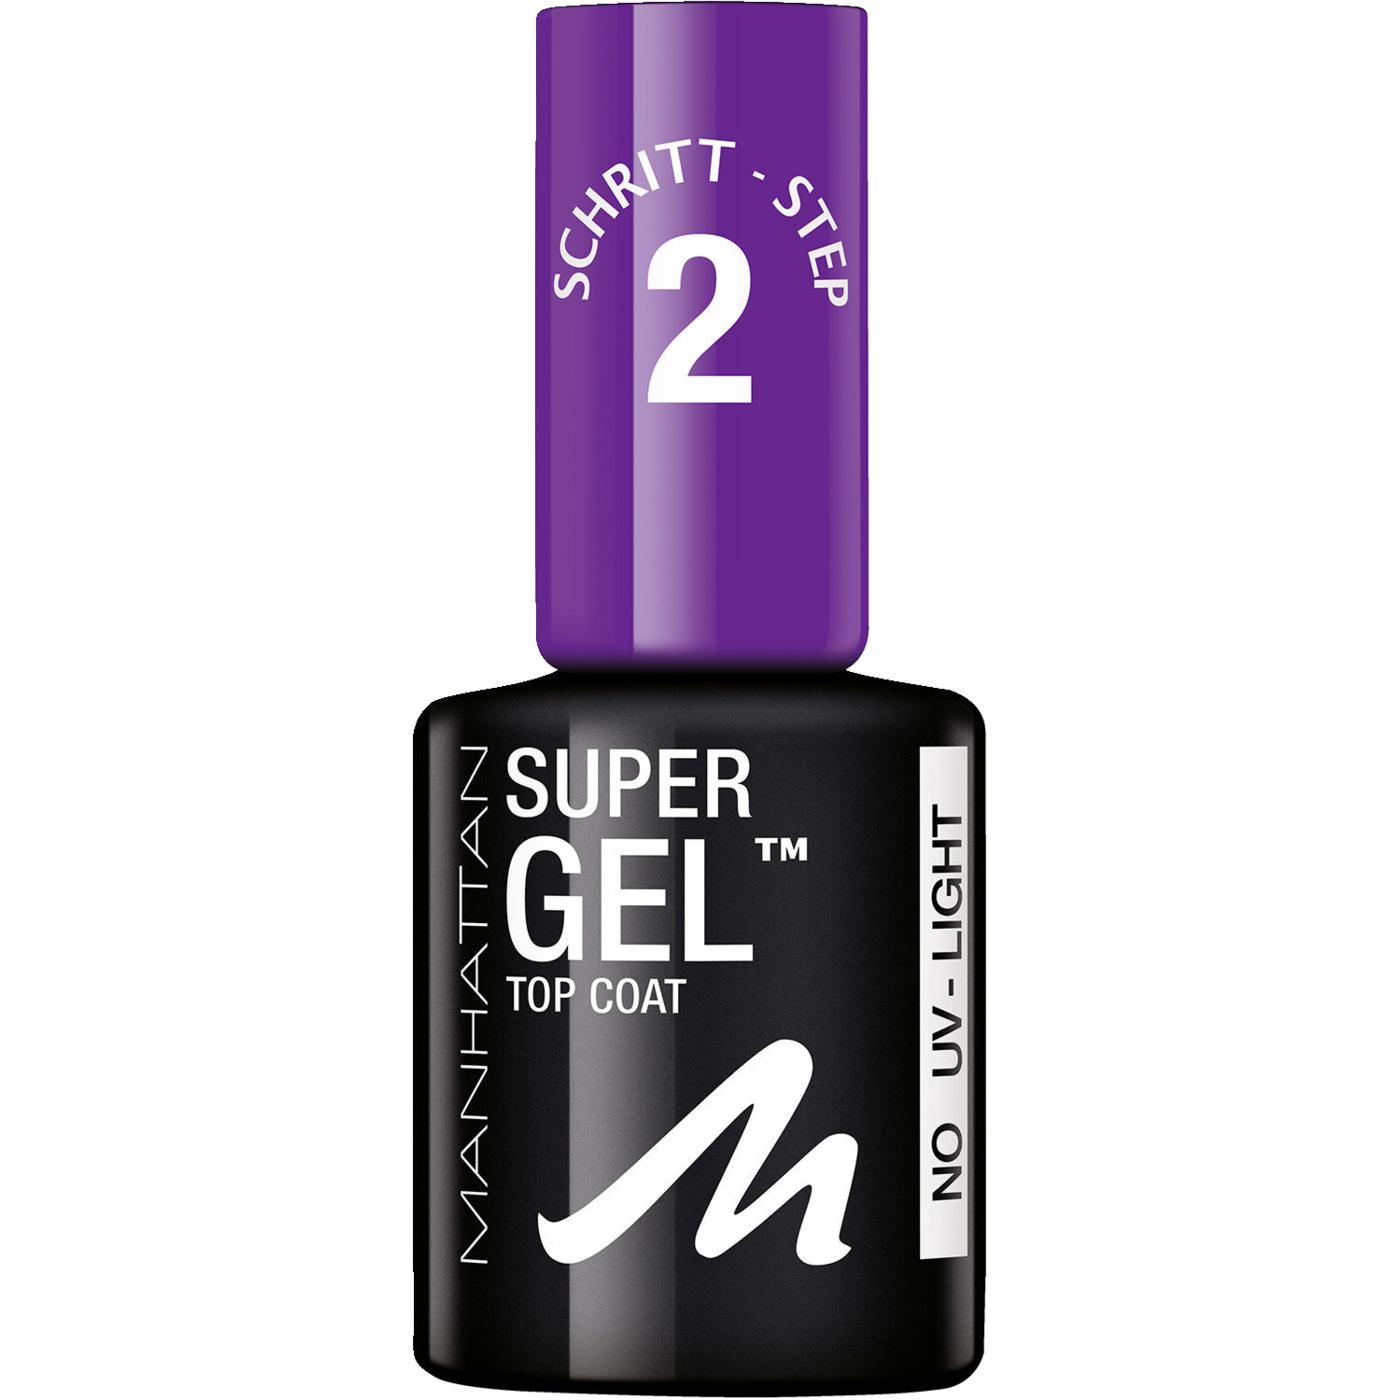 Gel Nagellack Mit Uv Lampe Super Gel Top Coat